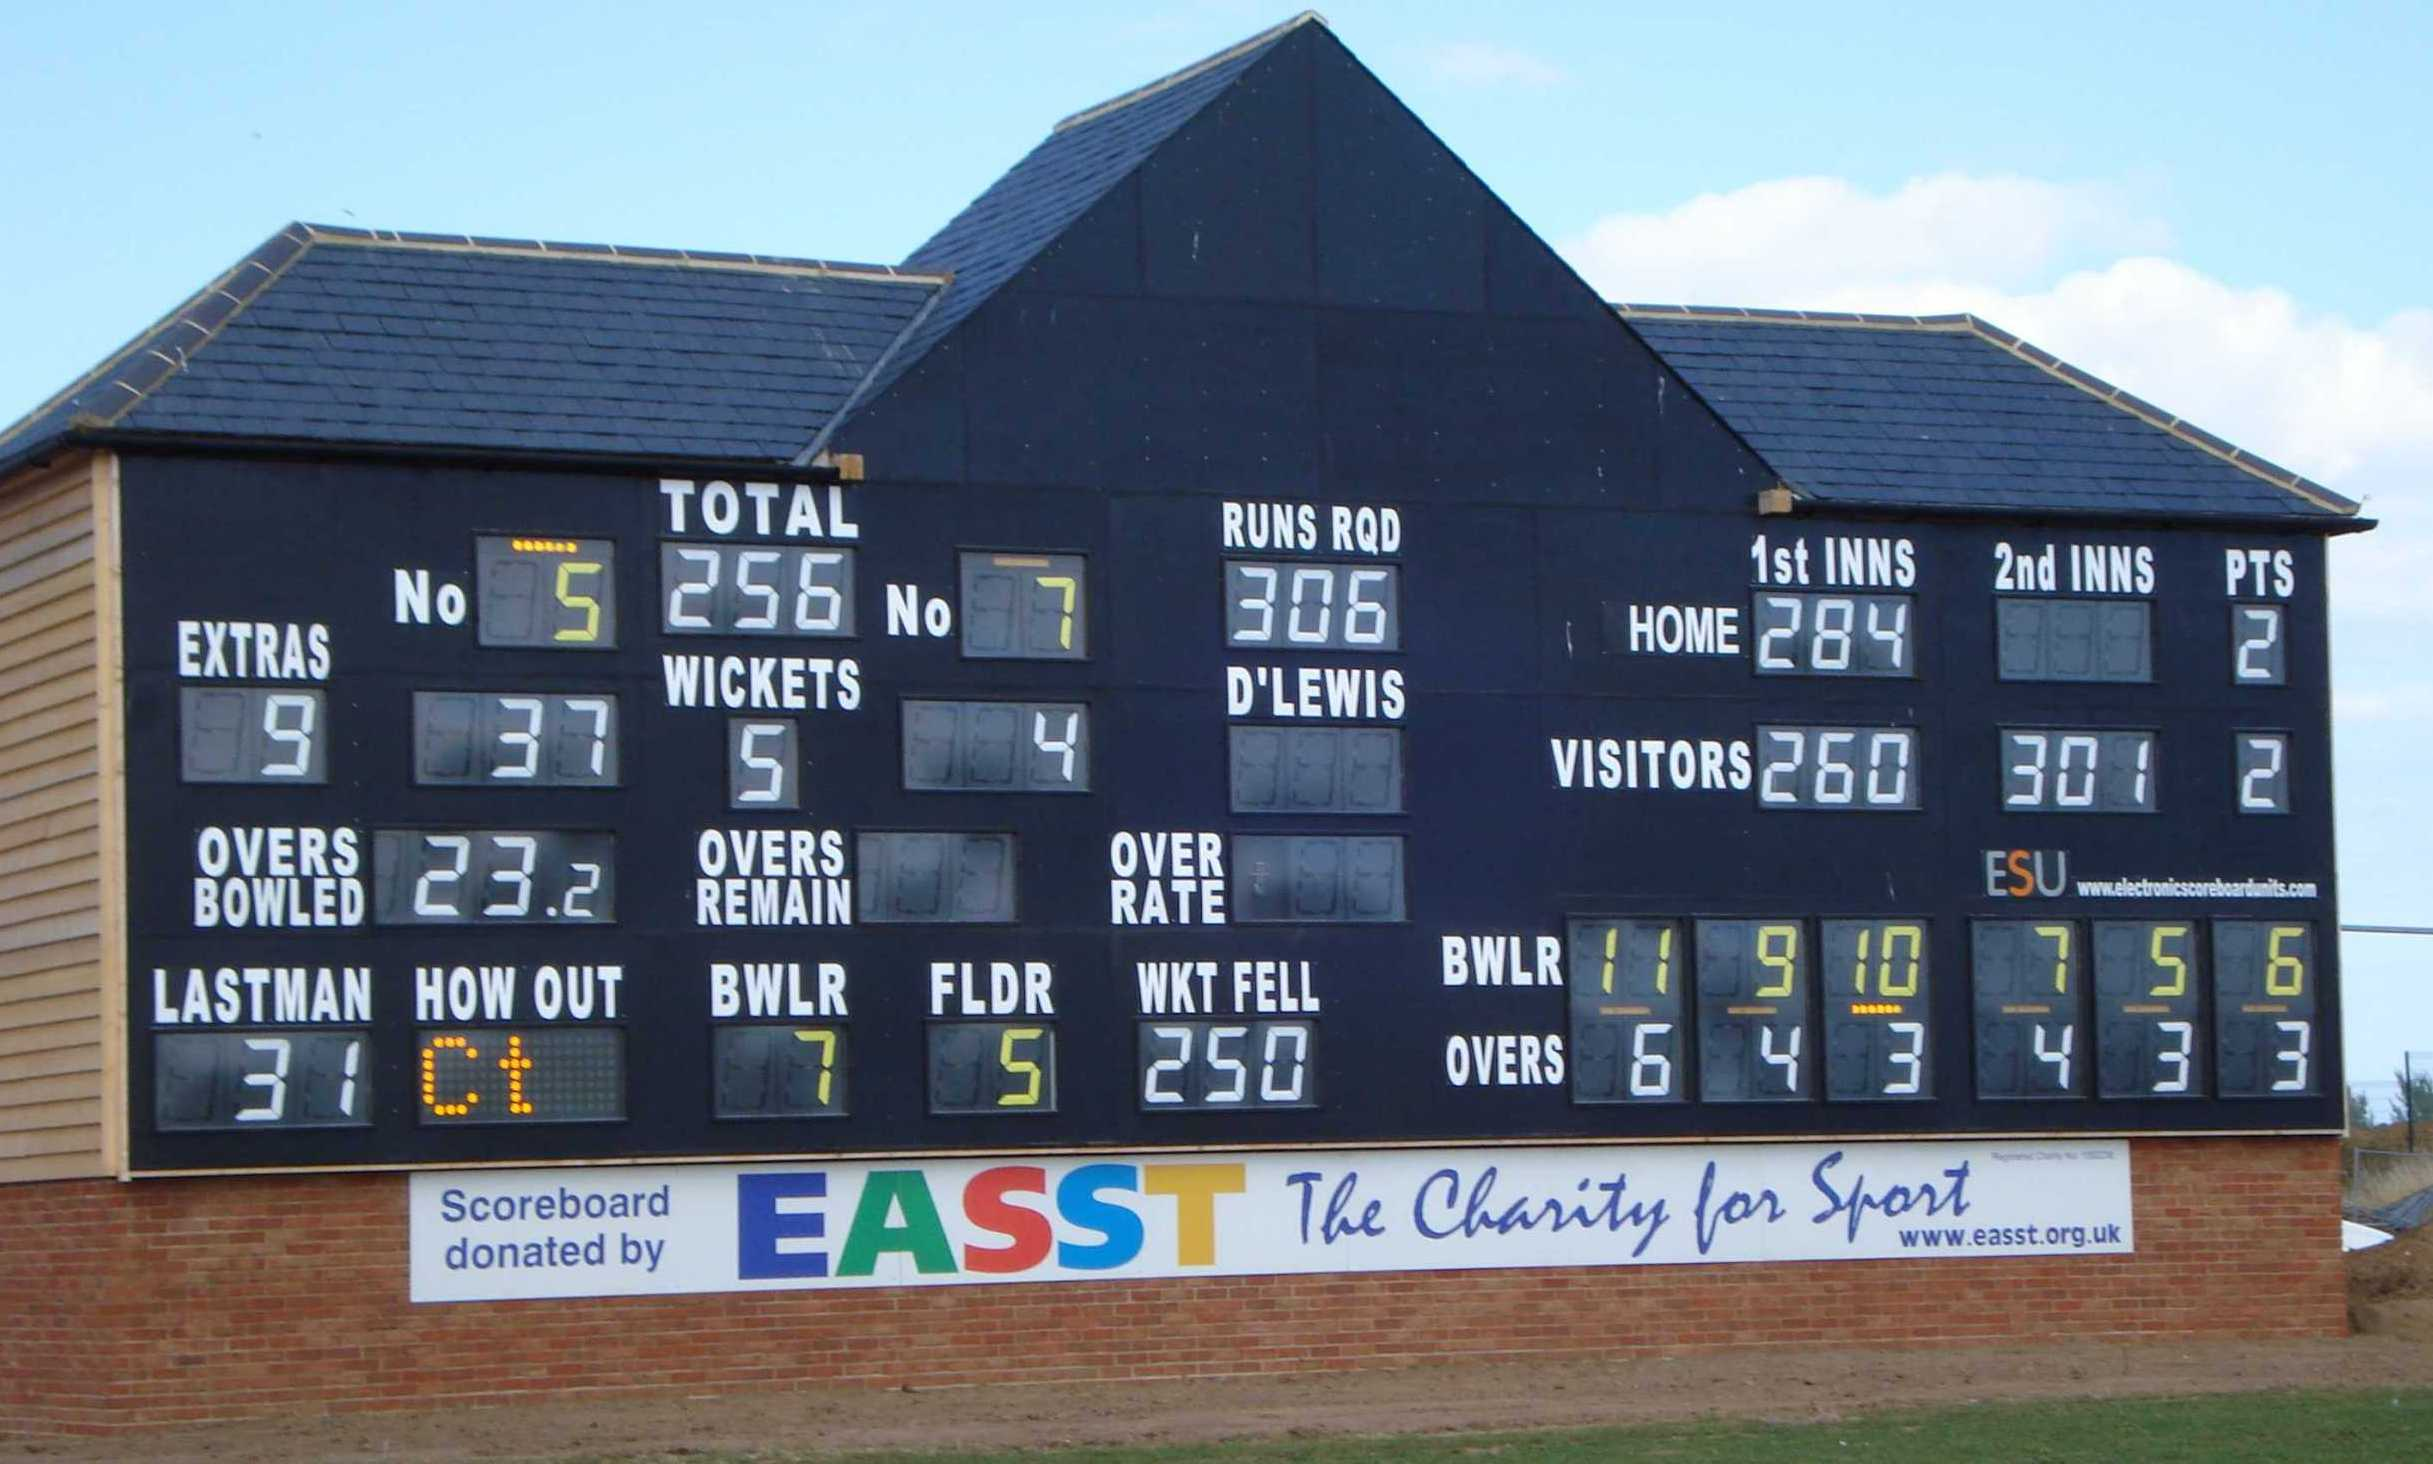 Garon Park - County standard scoreboard to enable Essex CCC to play there during county ground redevelopment